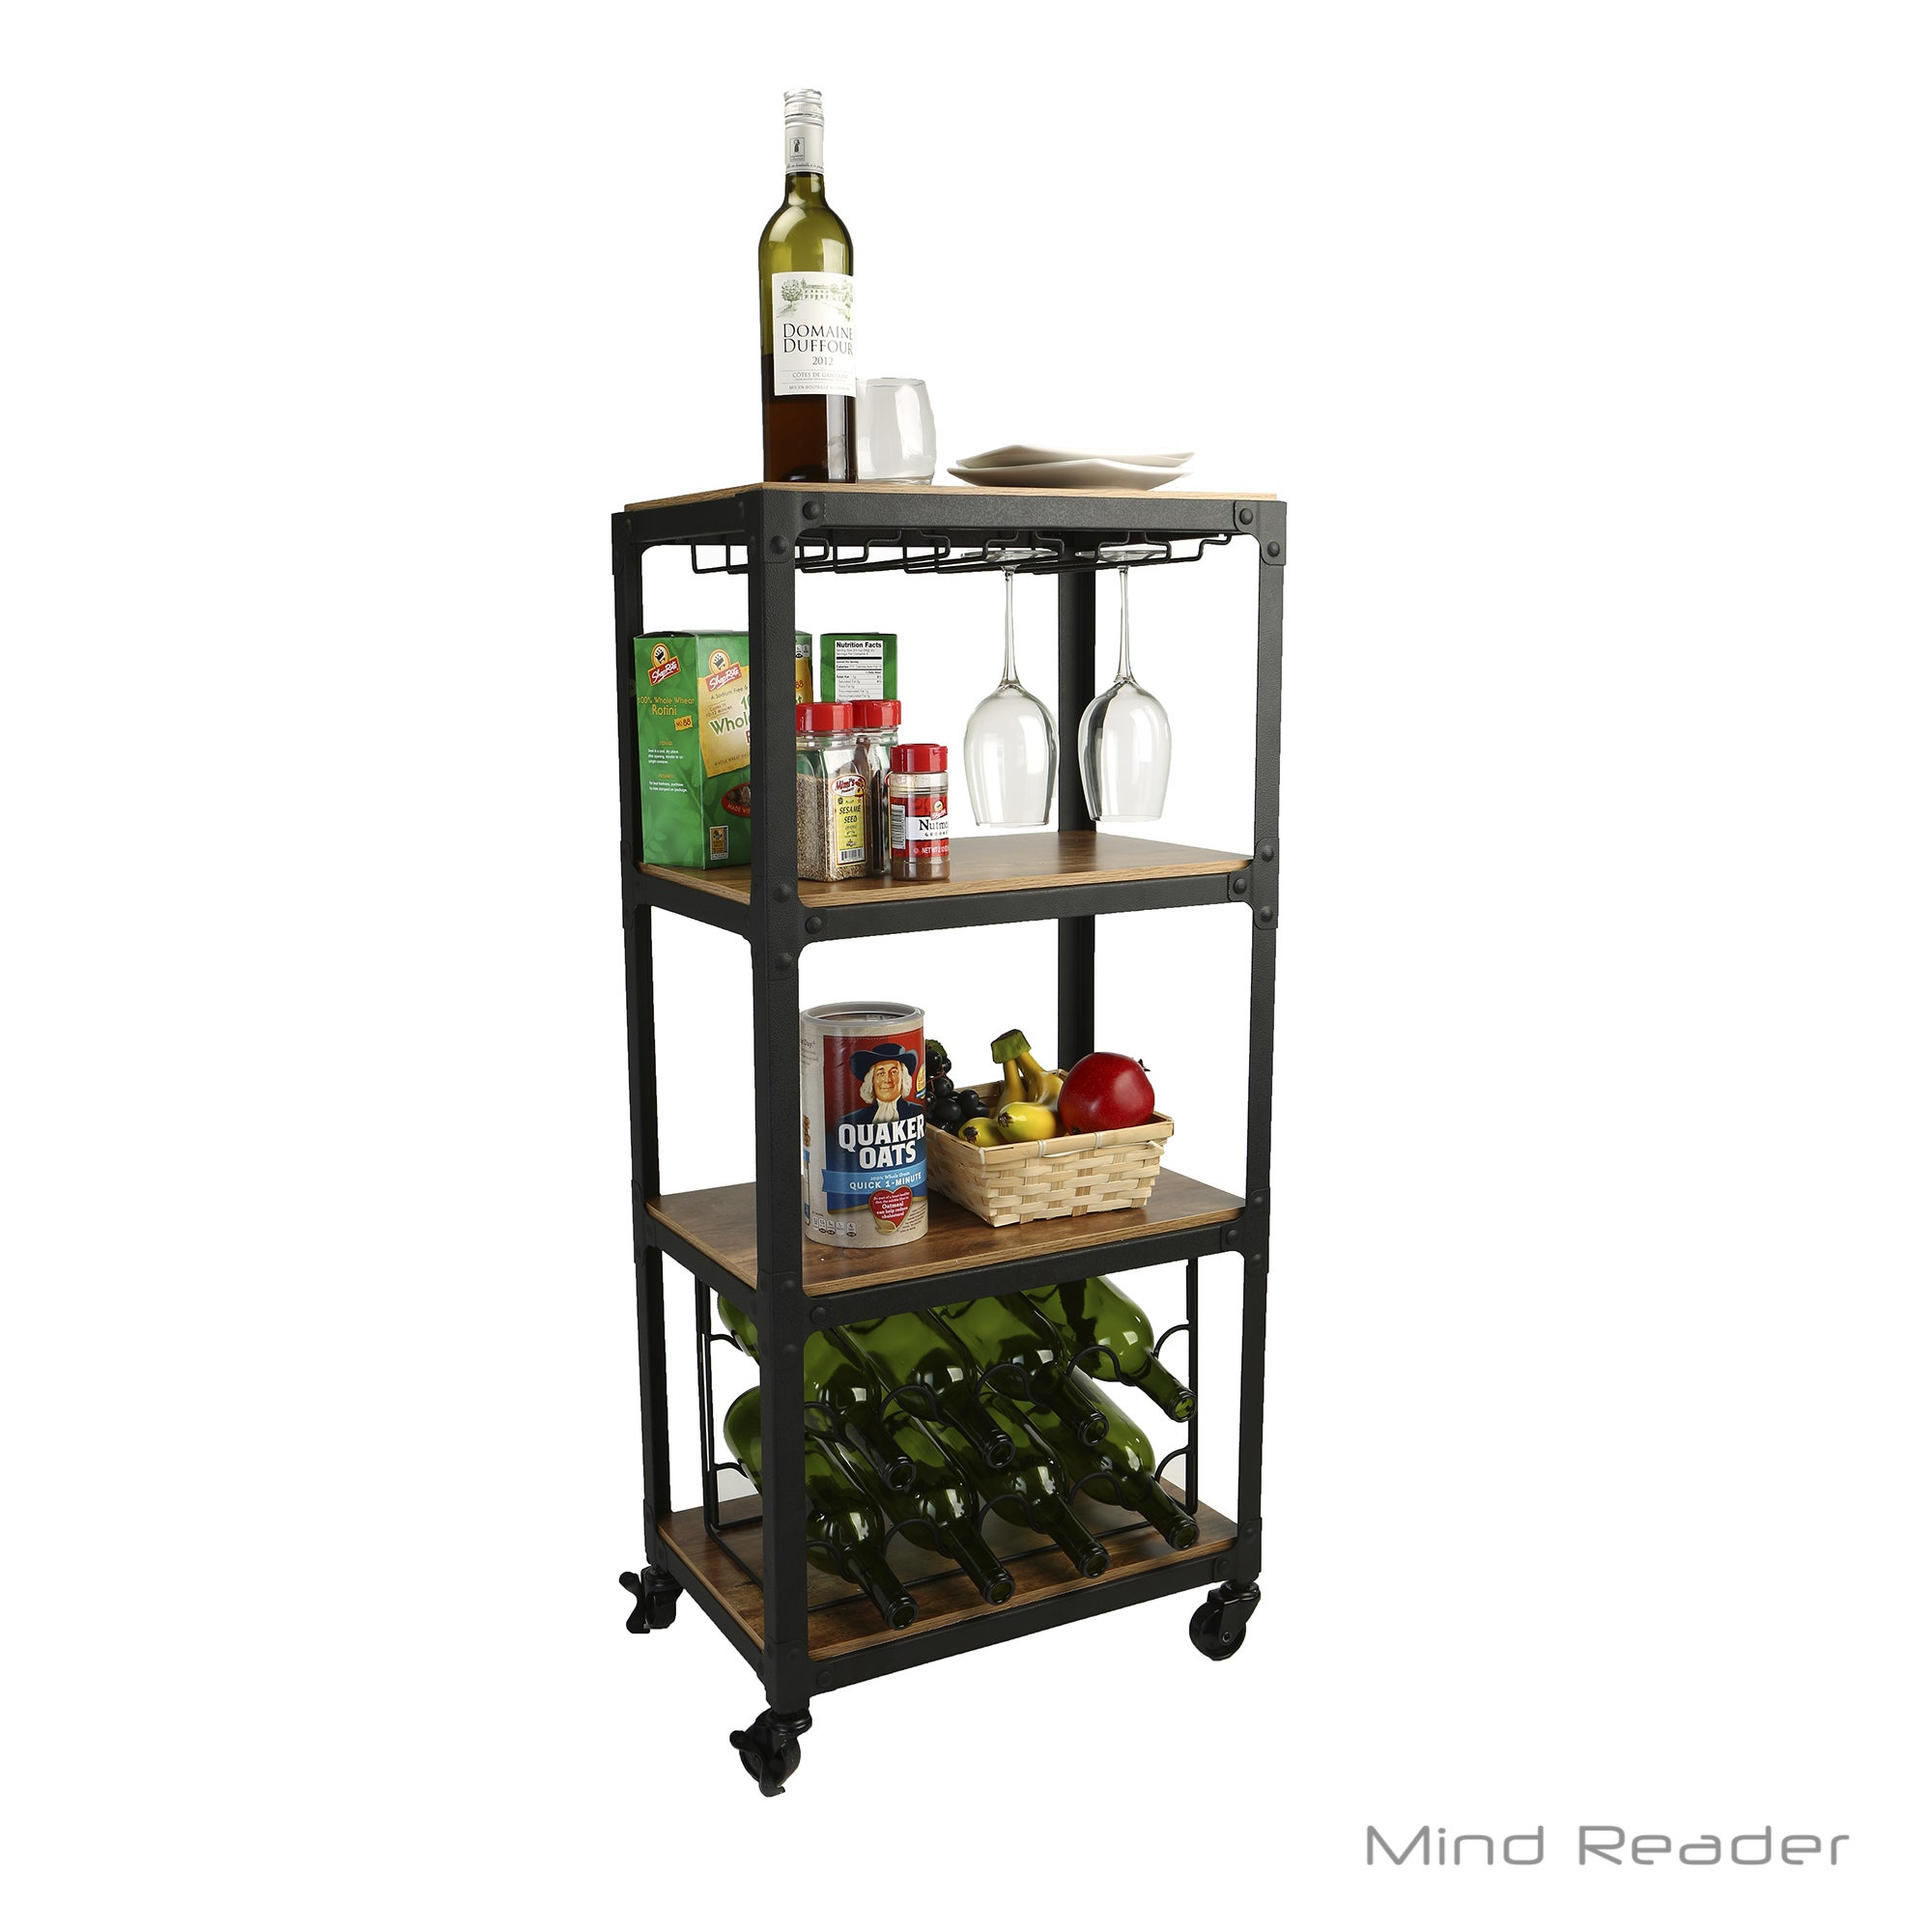 is crafted holders woodland and our handy bottle art wine stylish wall solution wood mango metal iron both rack storage pin of attractive with